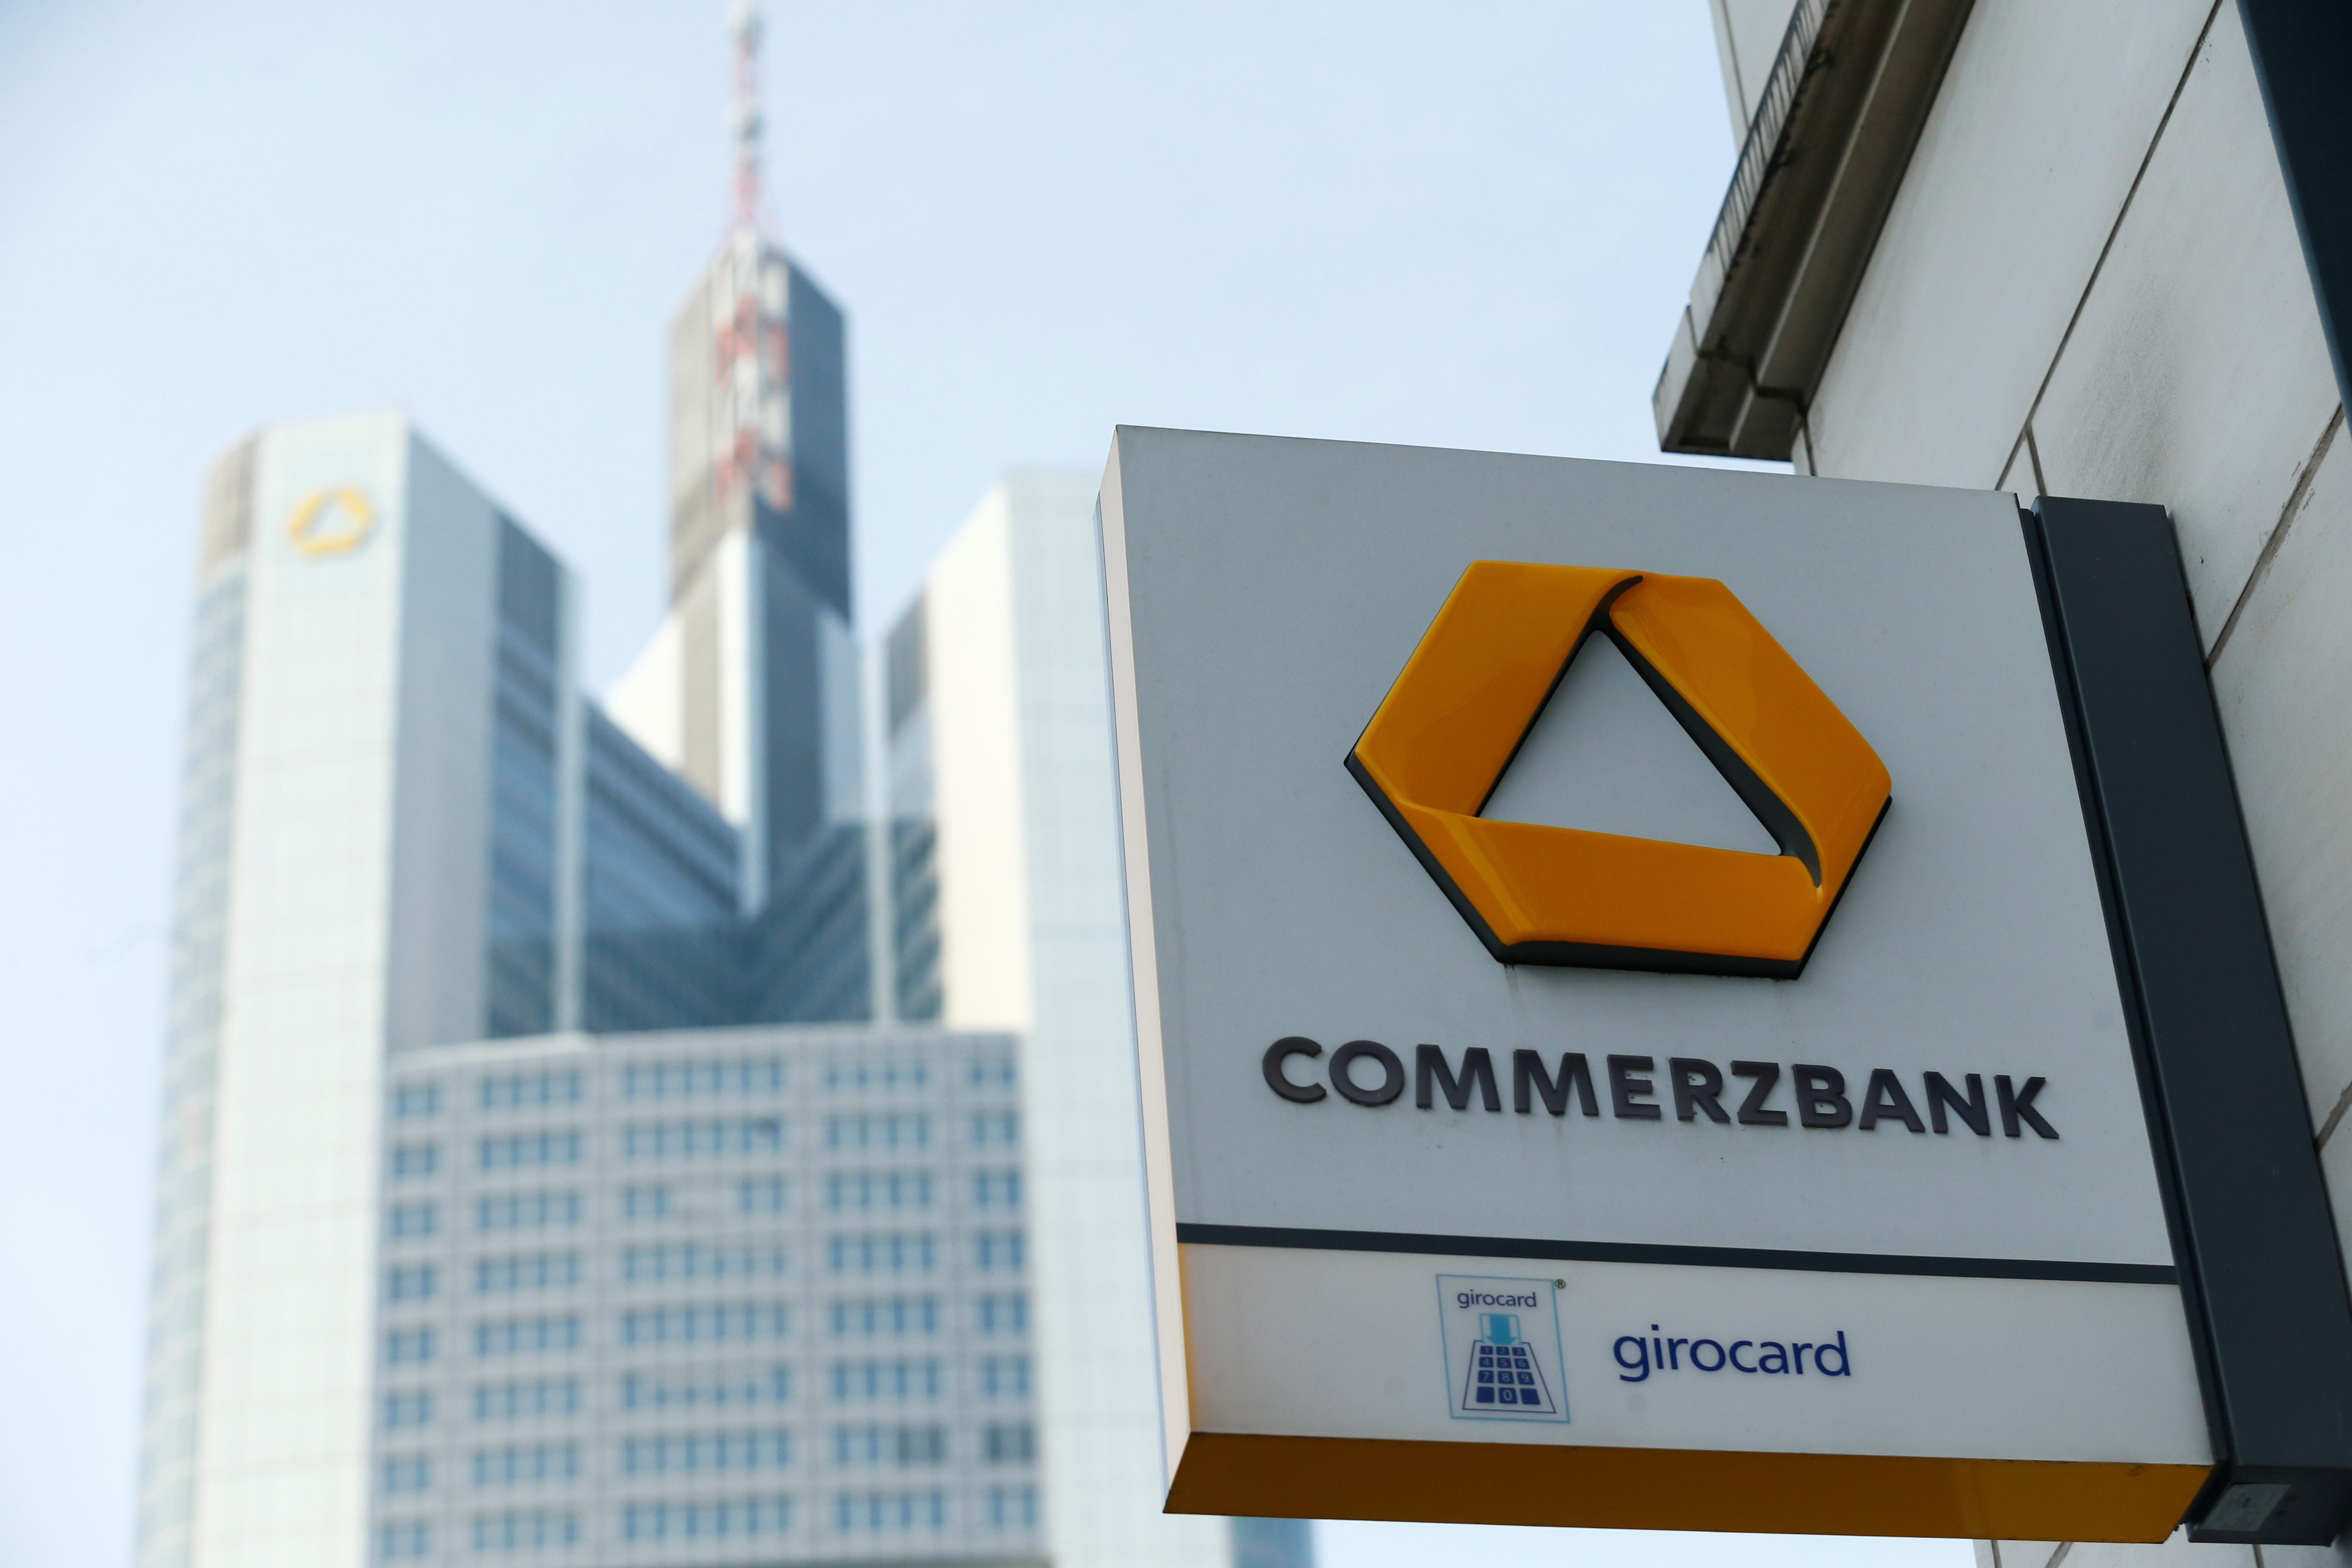 Germany's Commerzbank may open 400-strong IT hub in Bulgaria: minister